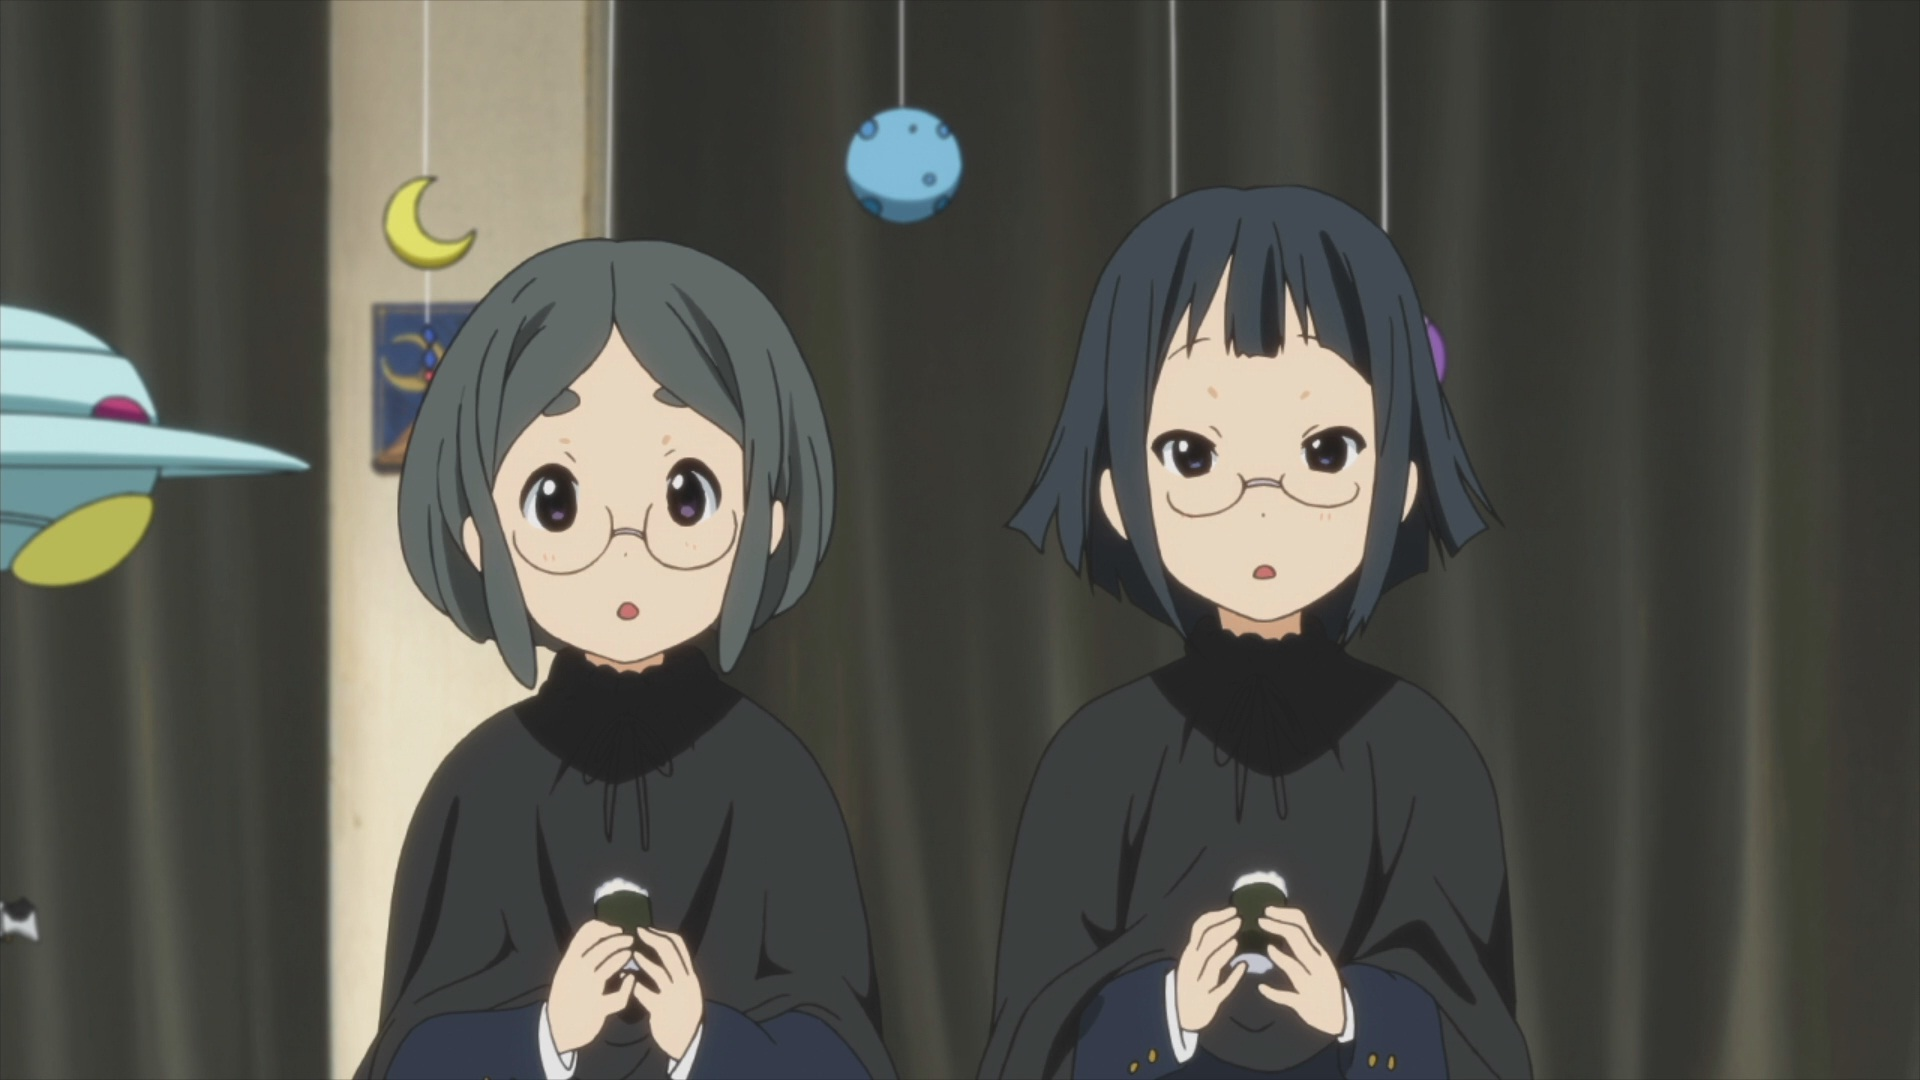 Occult Club Members | K-ON! Wiki | FANDOM powered by Wikia